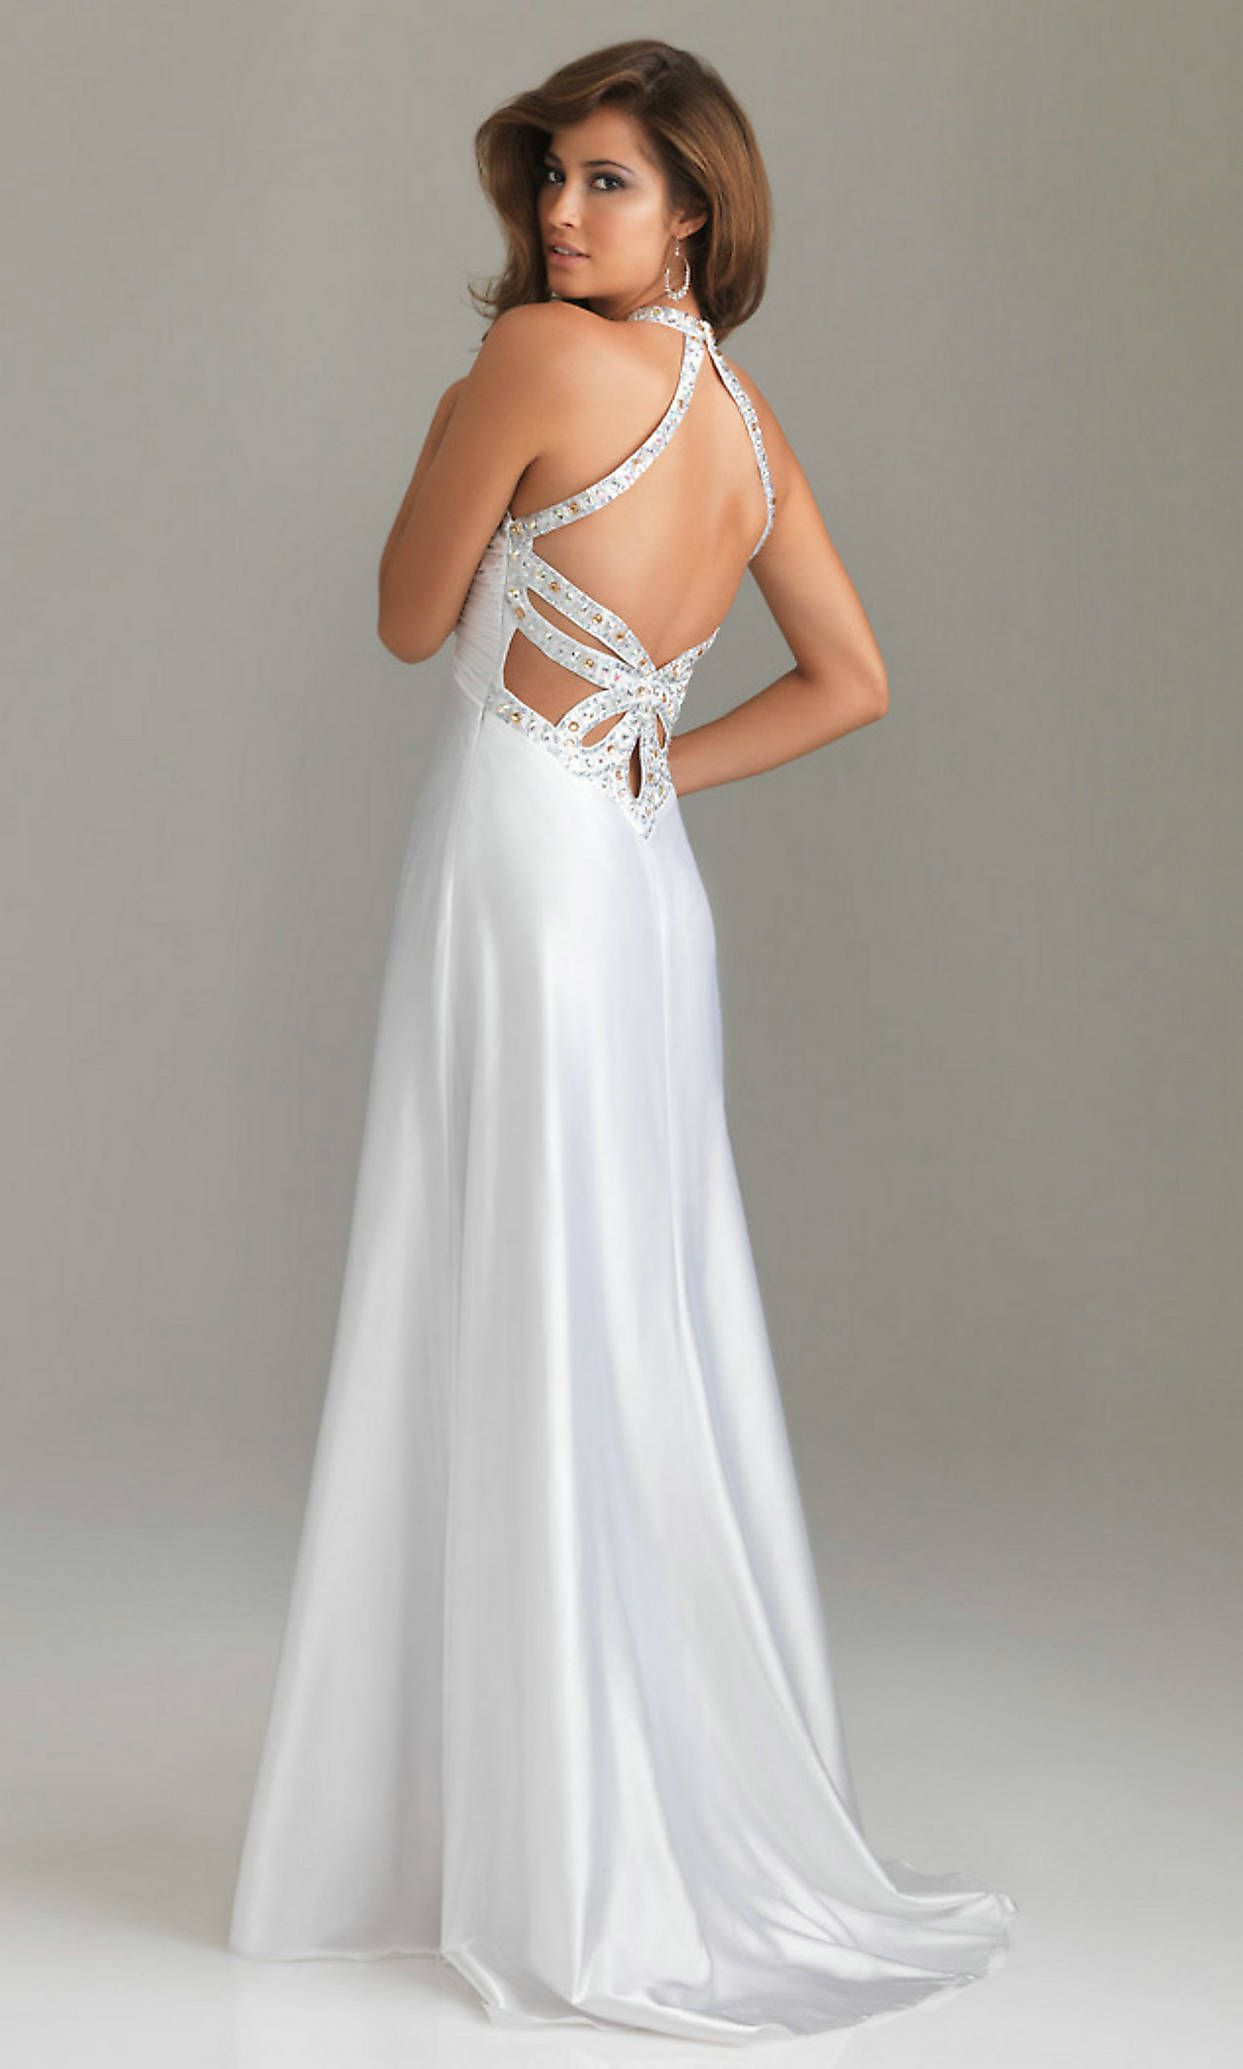 20 Beautiful White Prom Dresses | Satin, Prom dresses and Formal ...